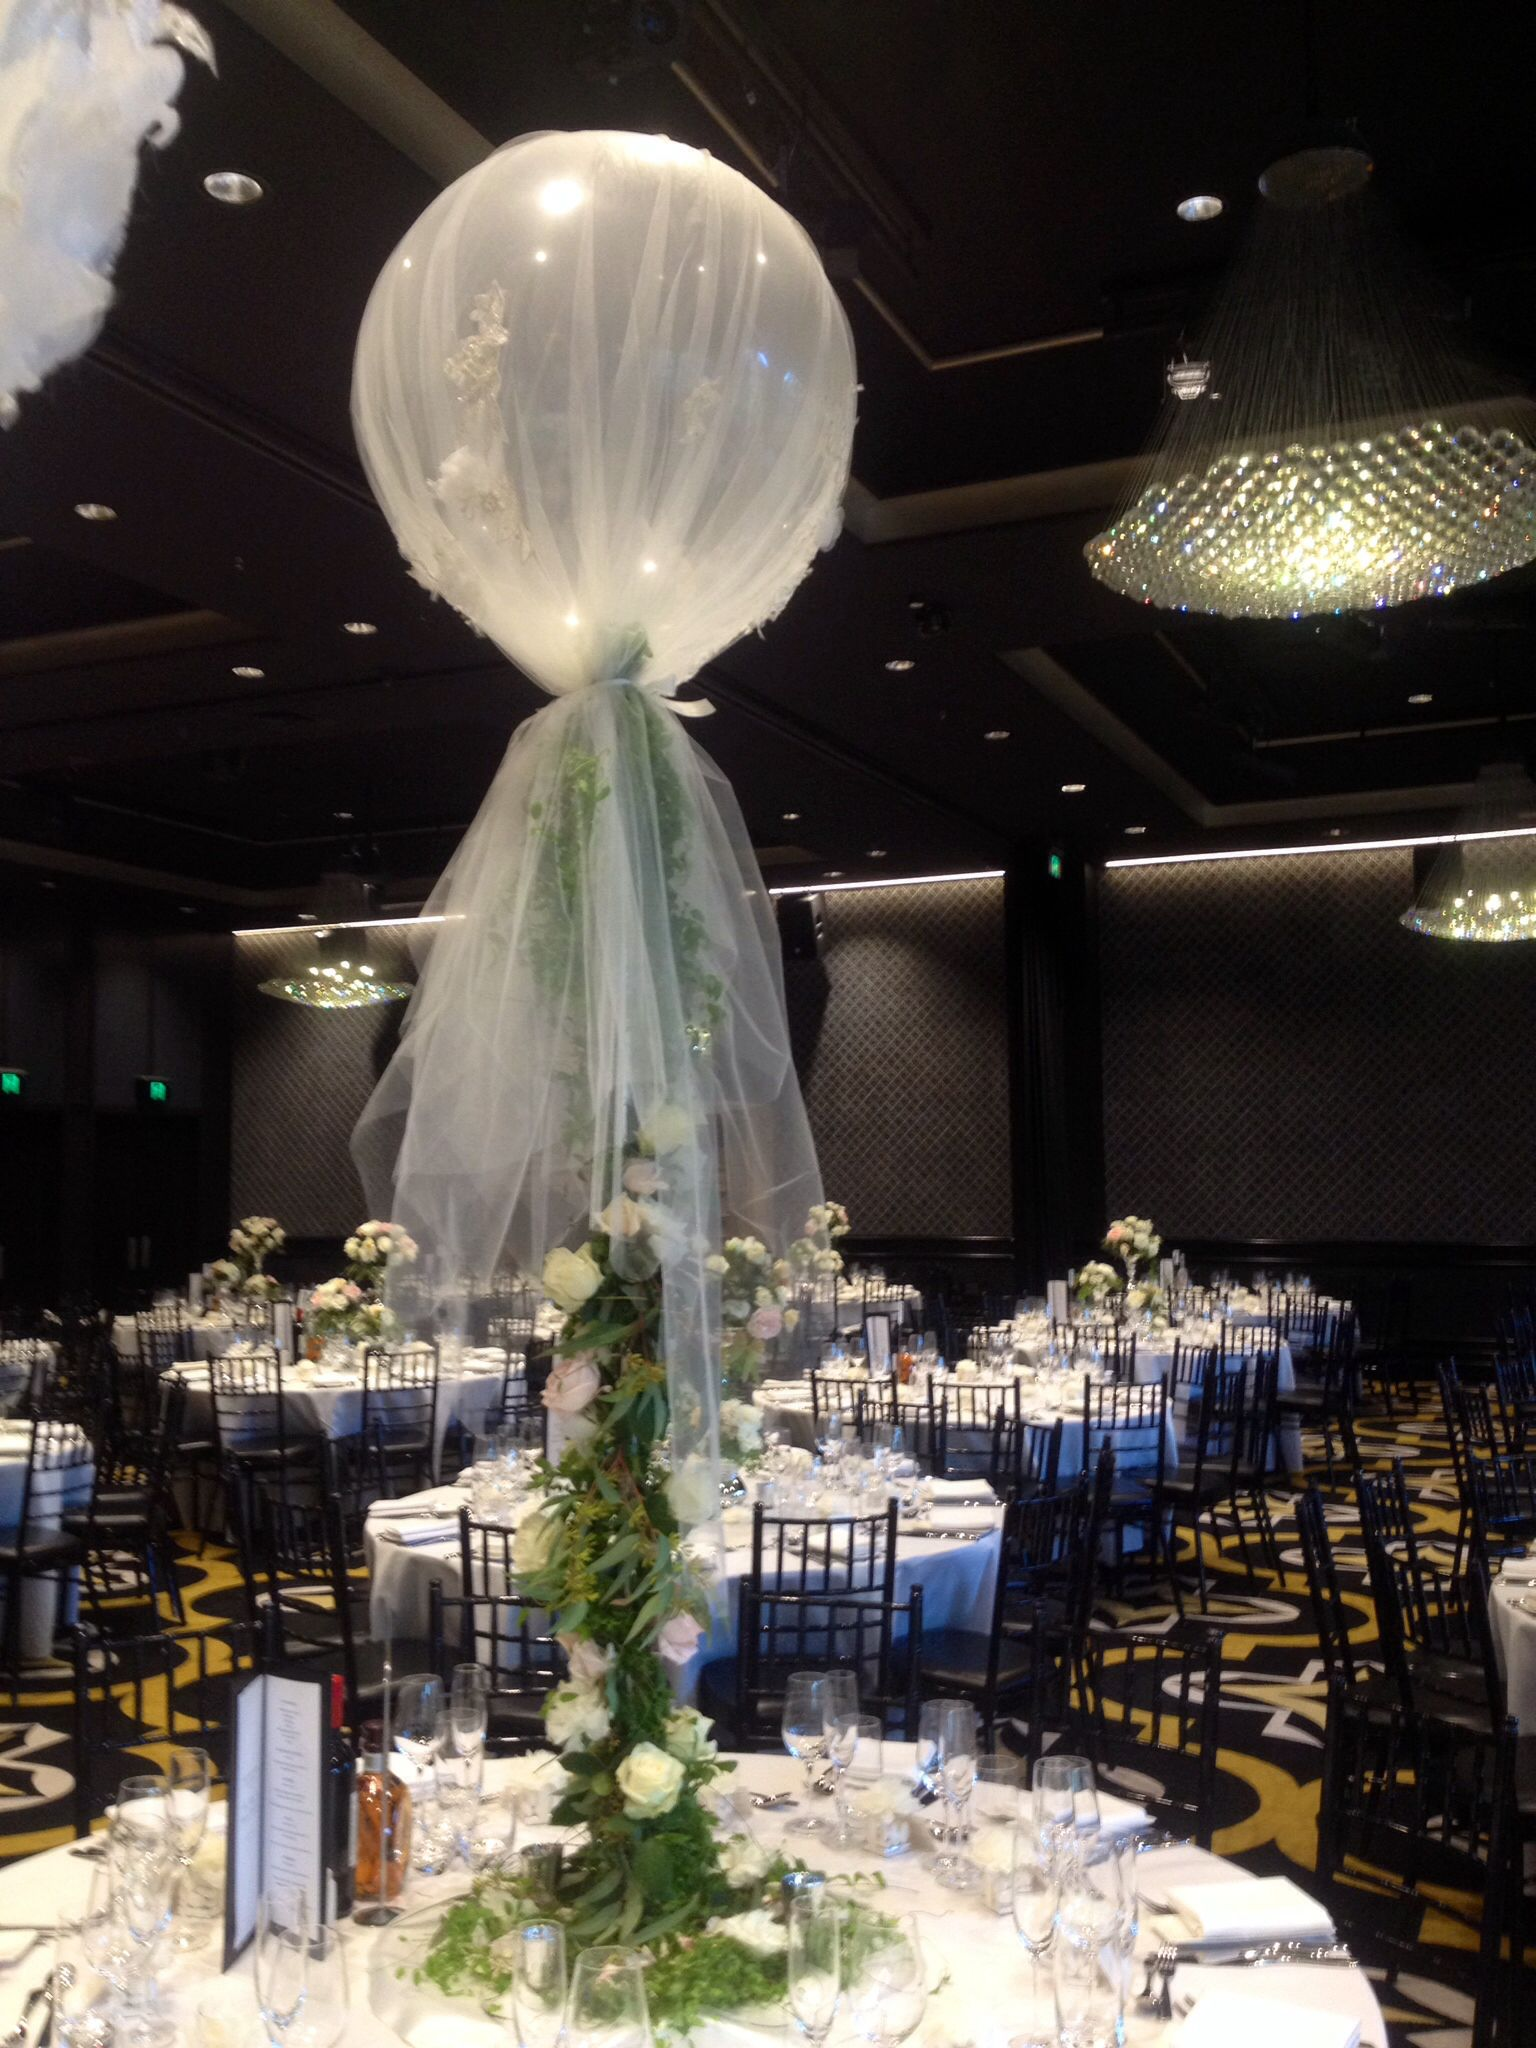 Large Balloon Centerpiece : Ft balloon wrapped in custom tulle set off base with ivy